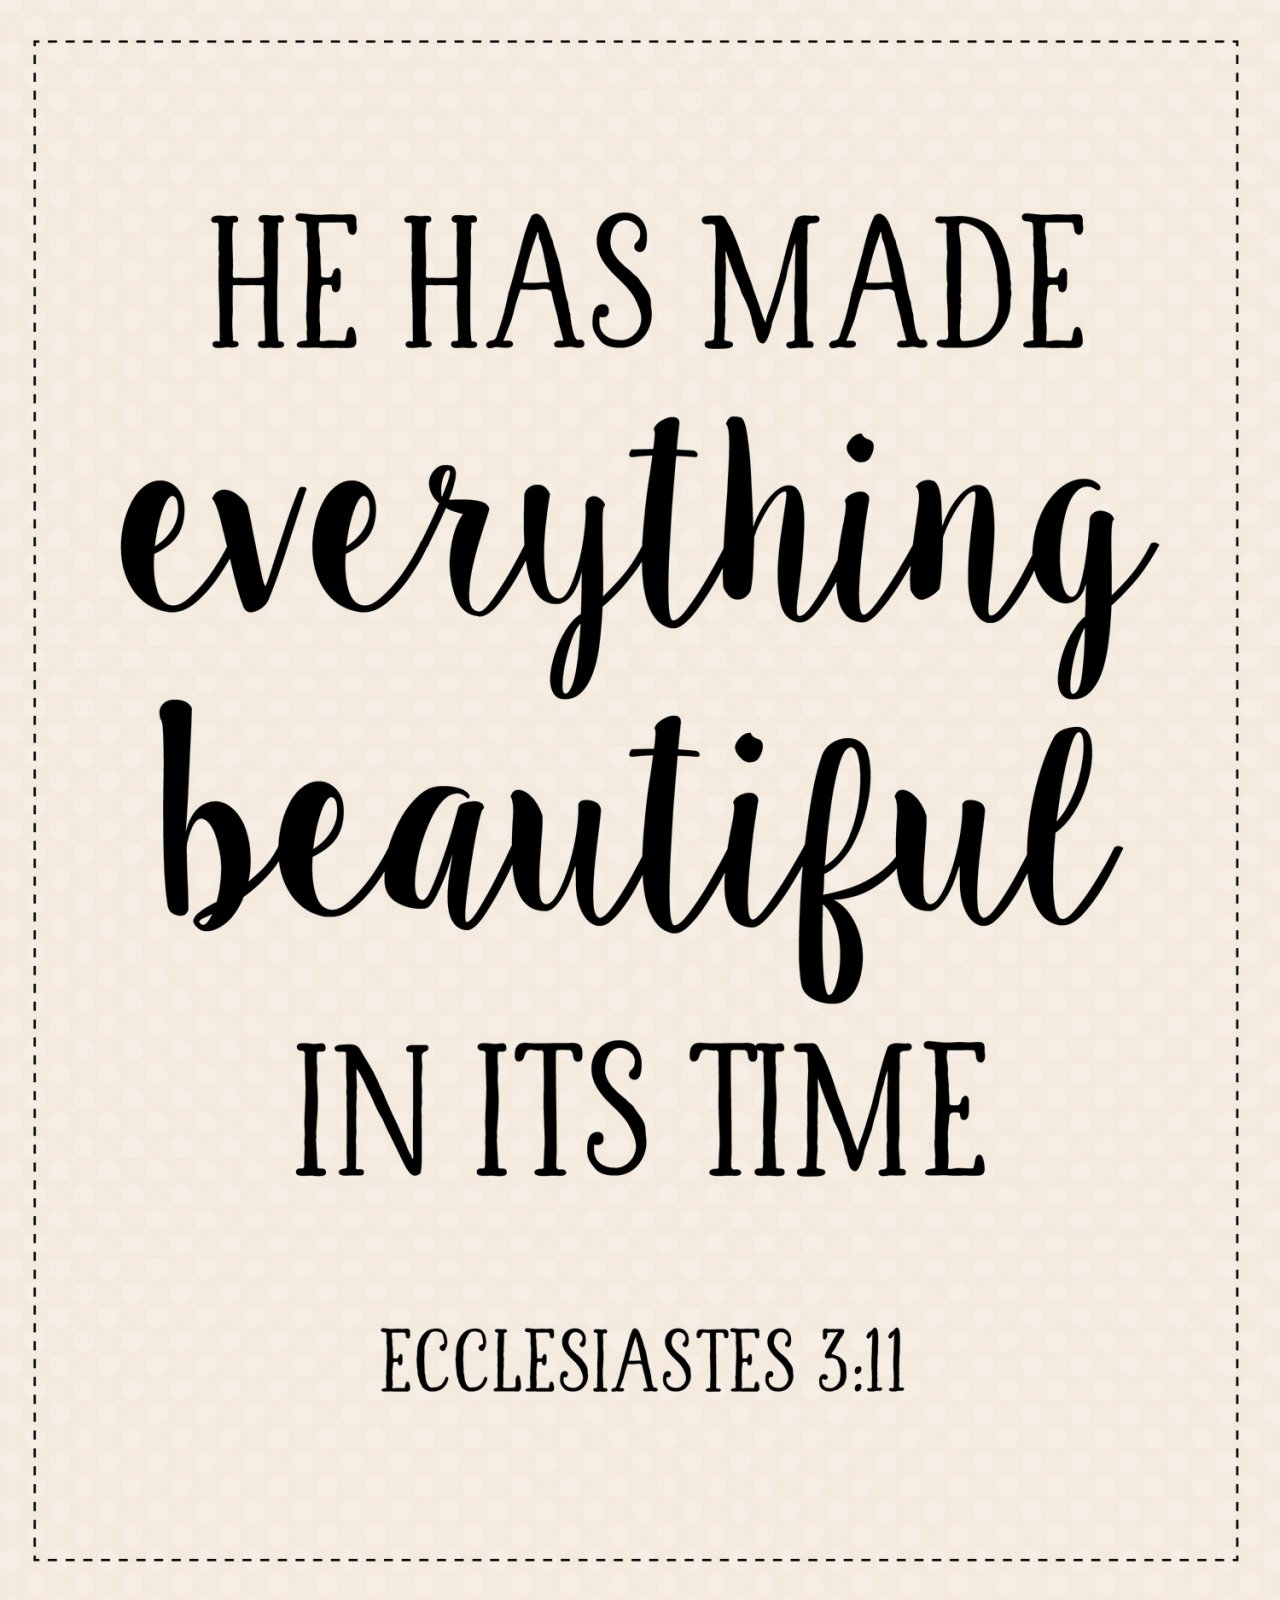 S-2: He has made everything beautiful...